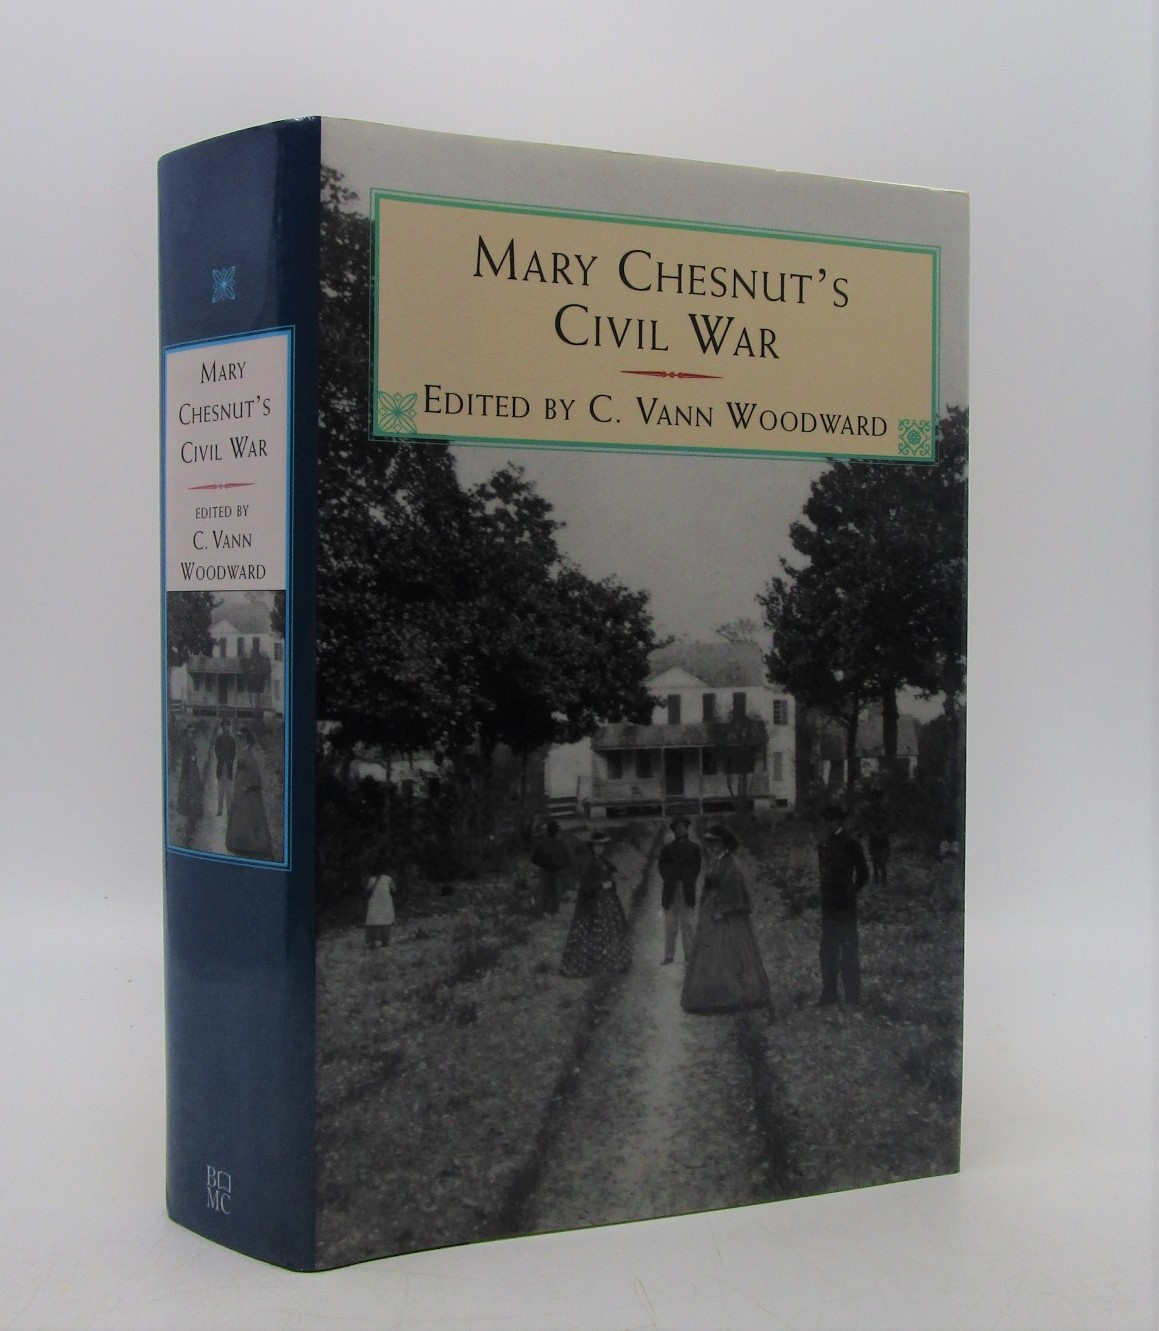 Image for Mary Chesnuts Civil War (Book of the Month Club)